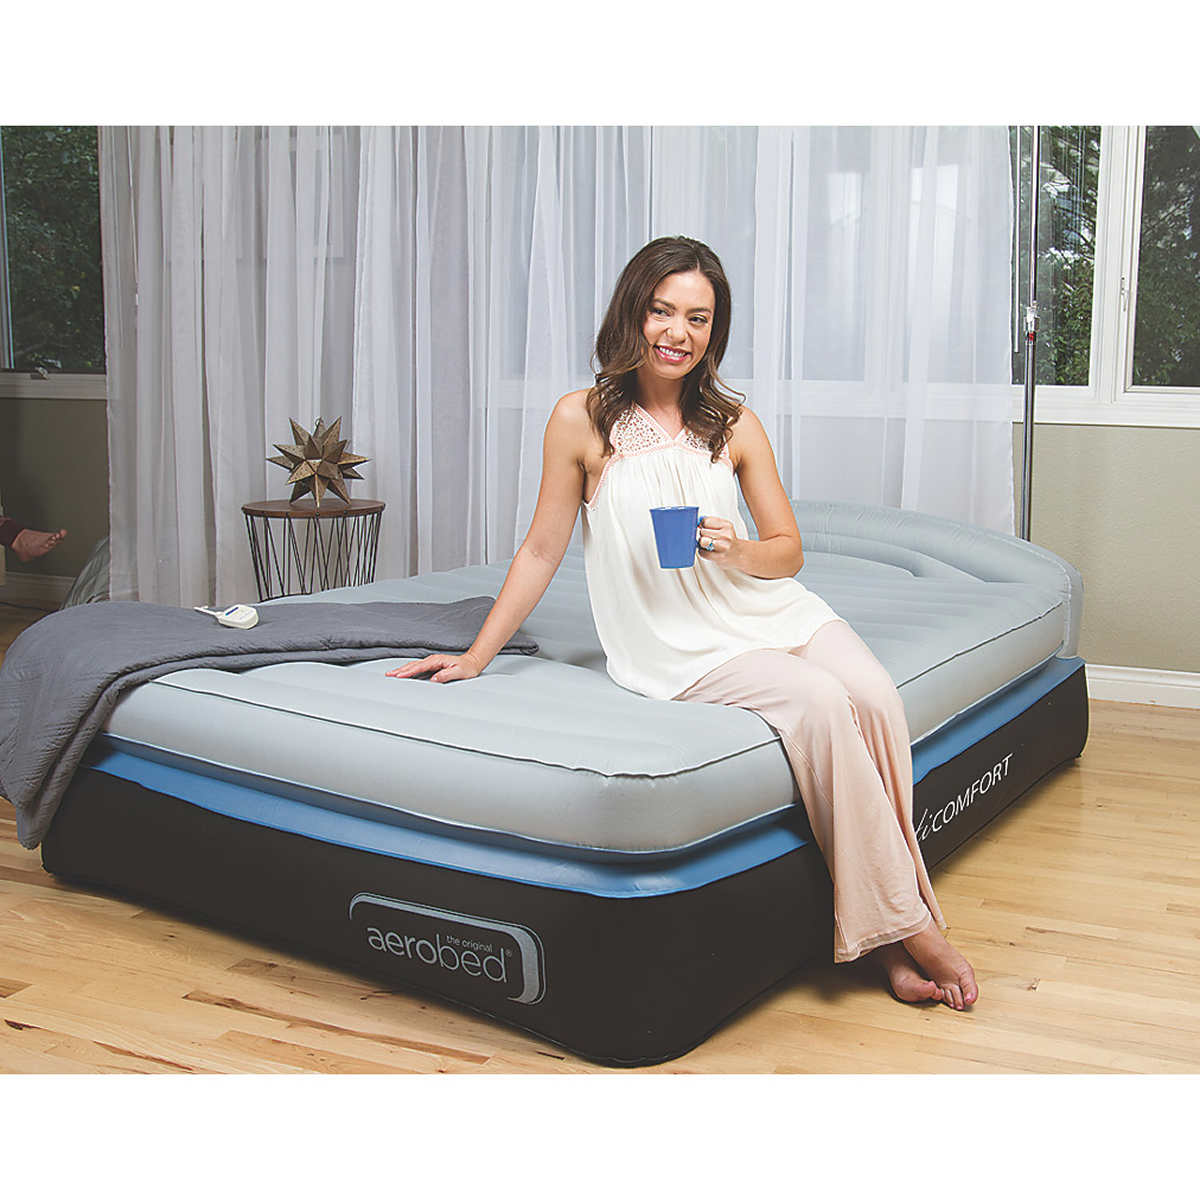 Camping bed costco - Aerobed Opti Comfort Queen Air Mattress With Headboard